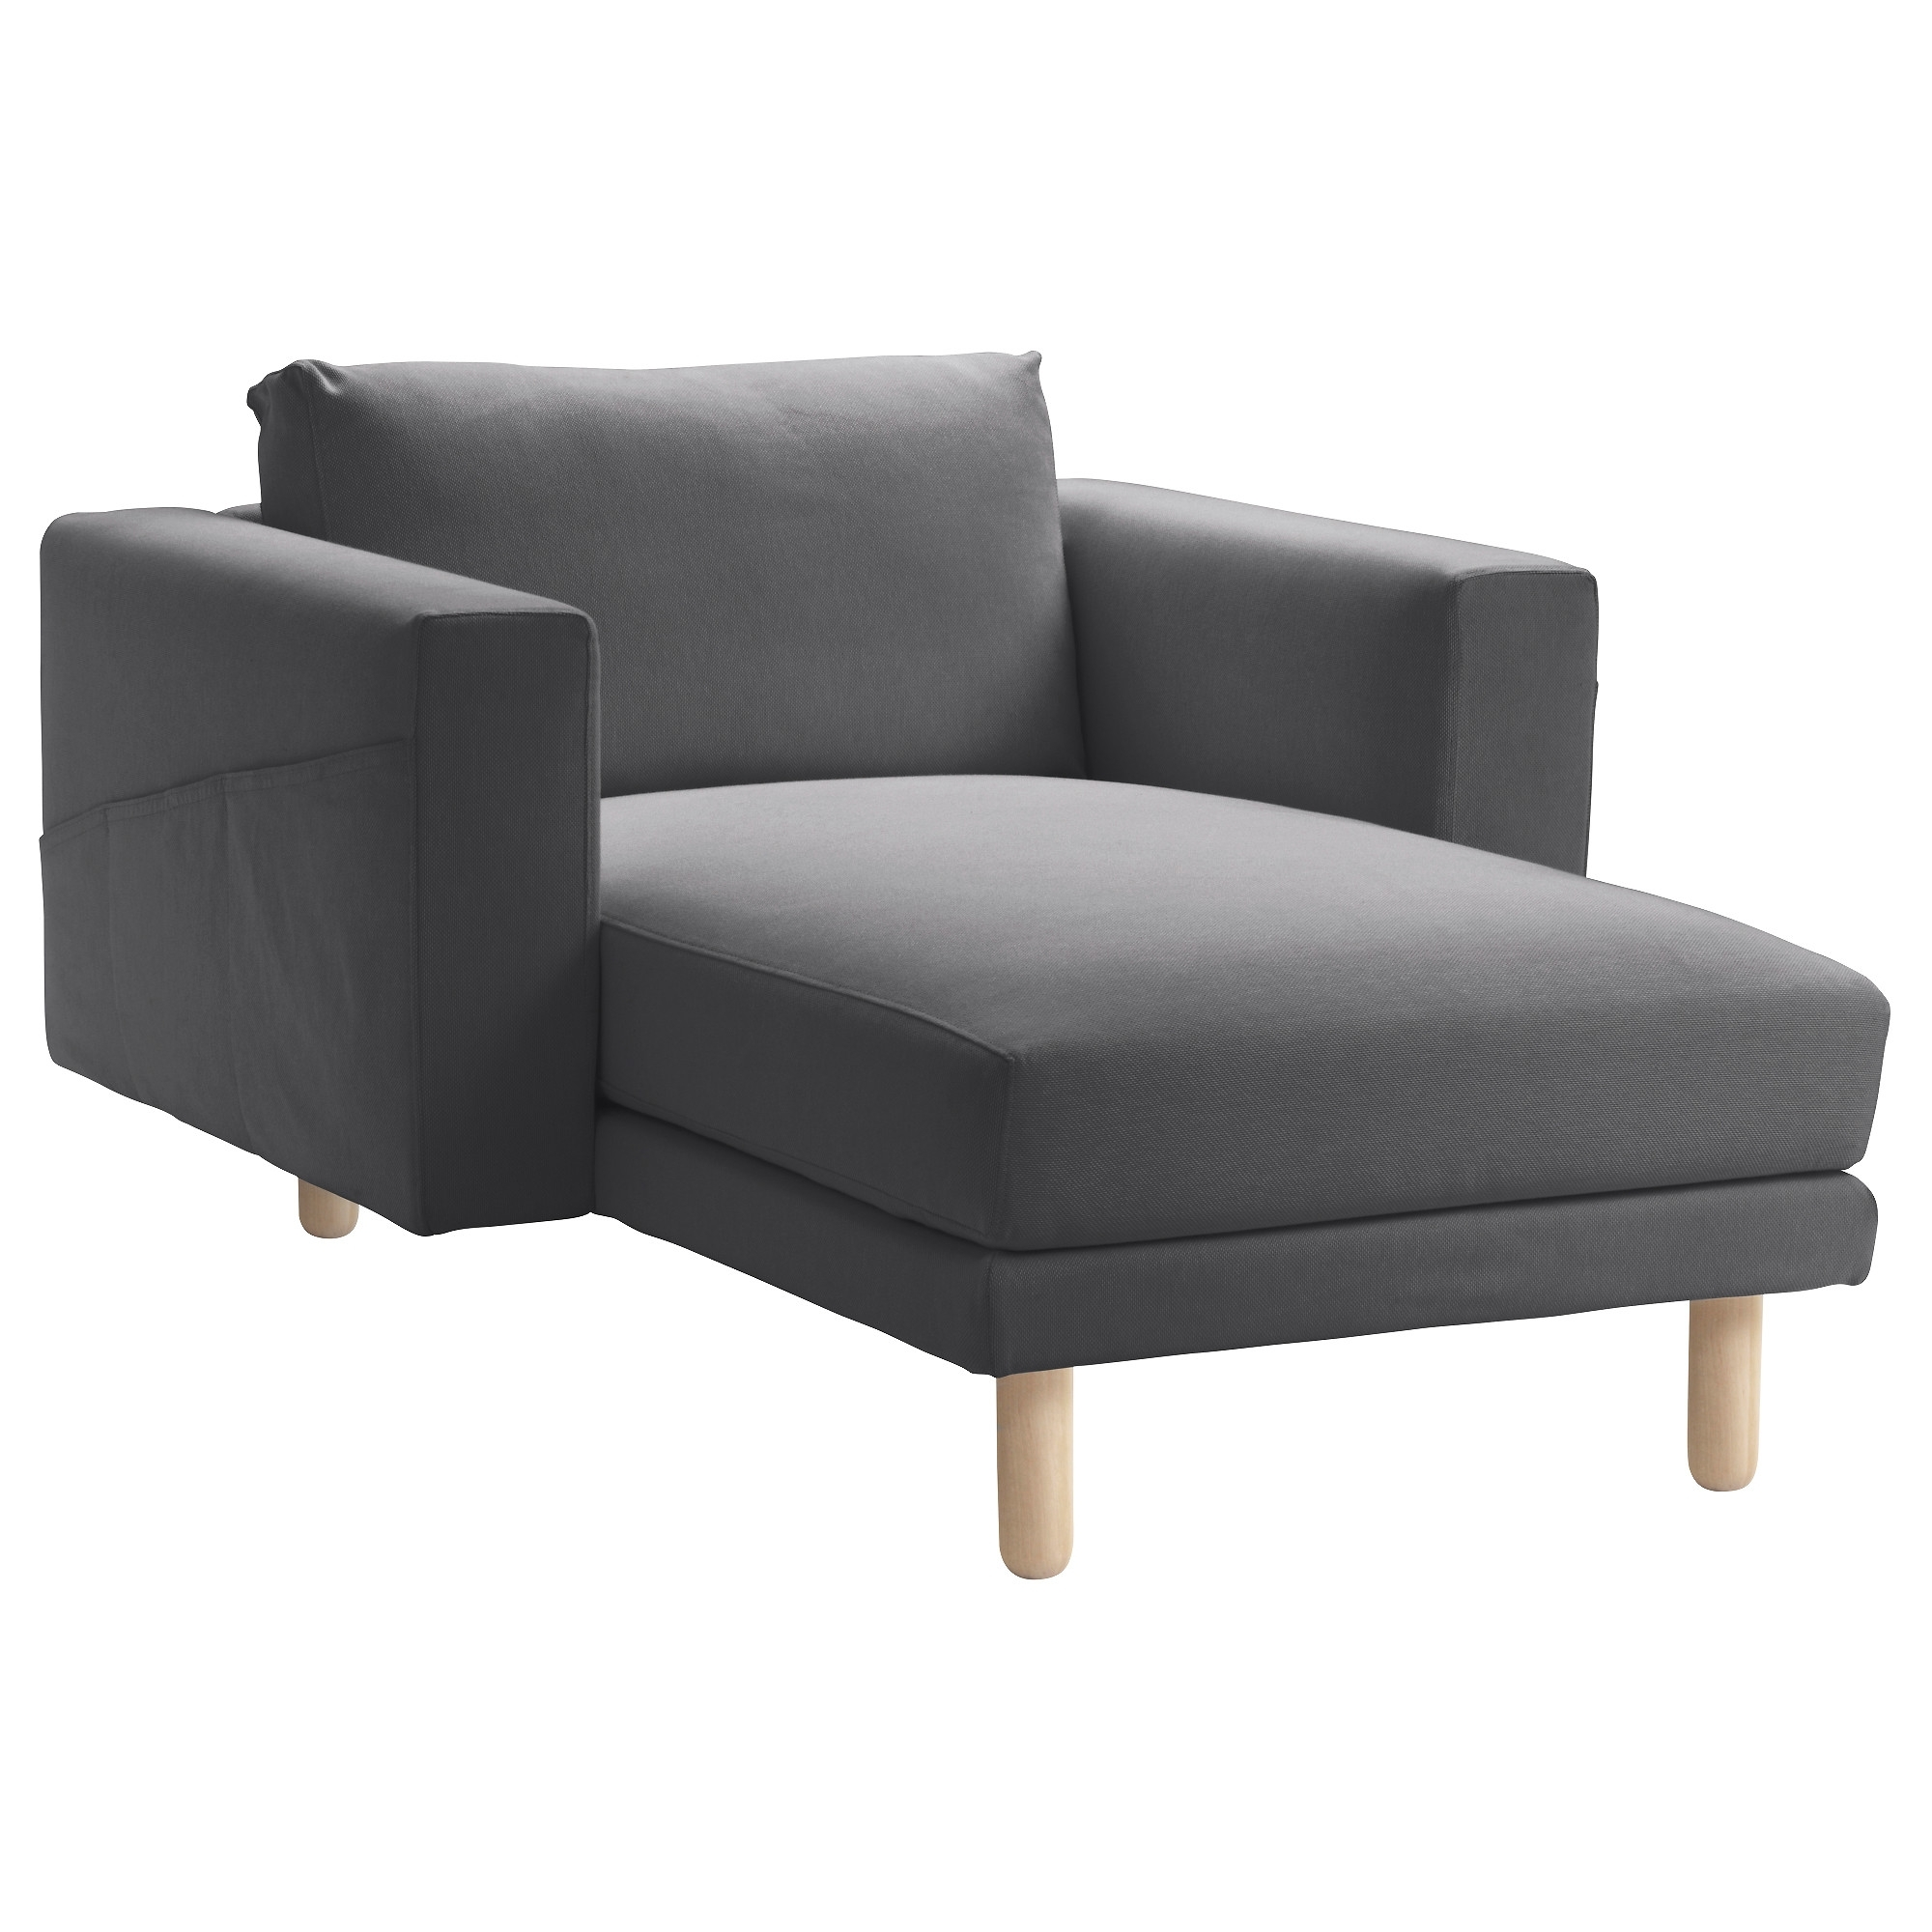 Preferred Ikea Chaise Longues Regarding Norsborg Chaise Longue Finnsta Dark Grey/birch – Ikea (View 13 of 15)